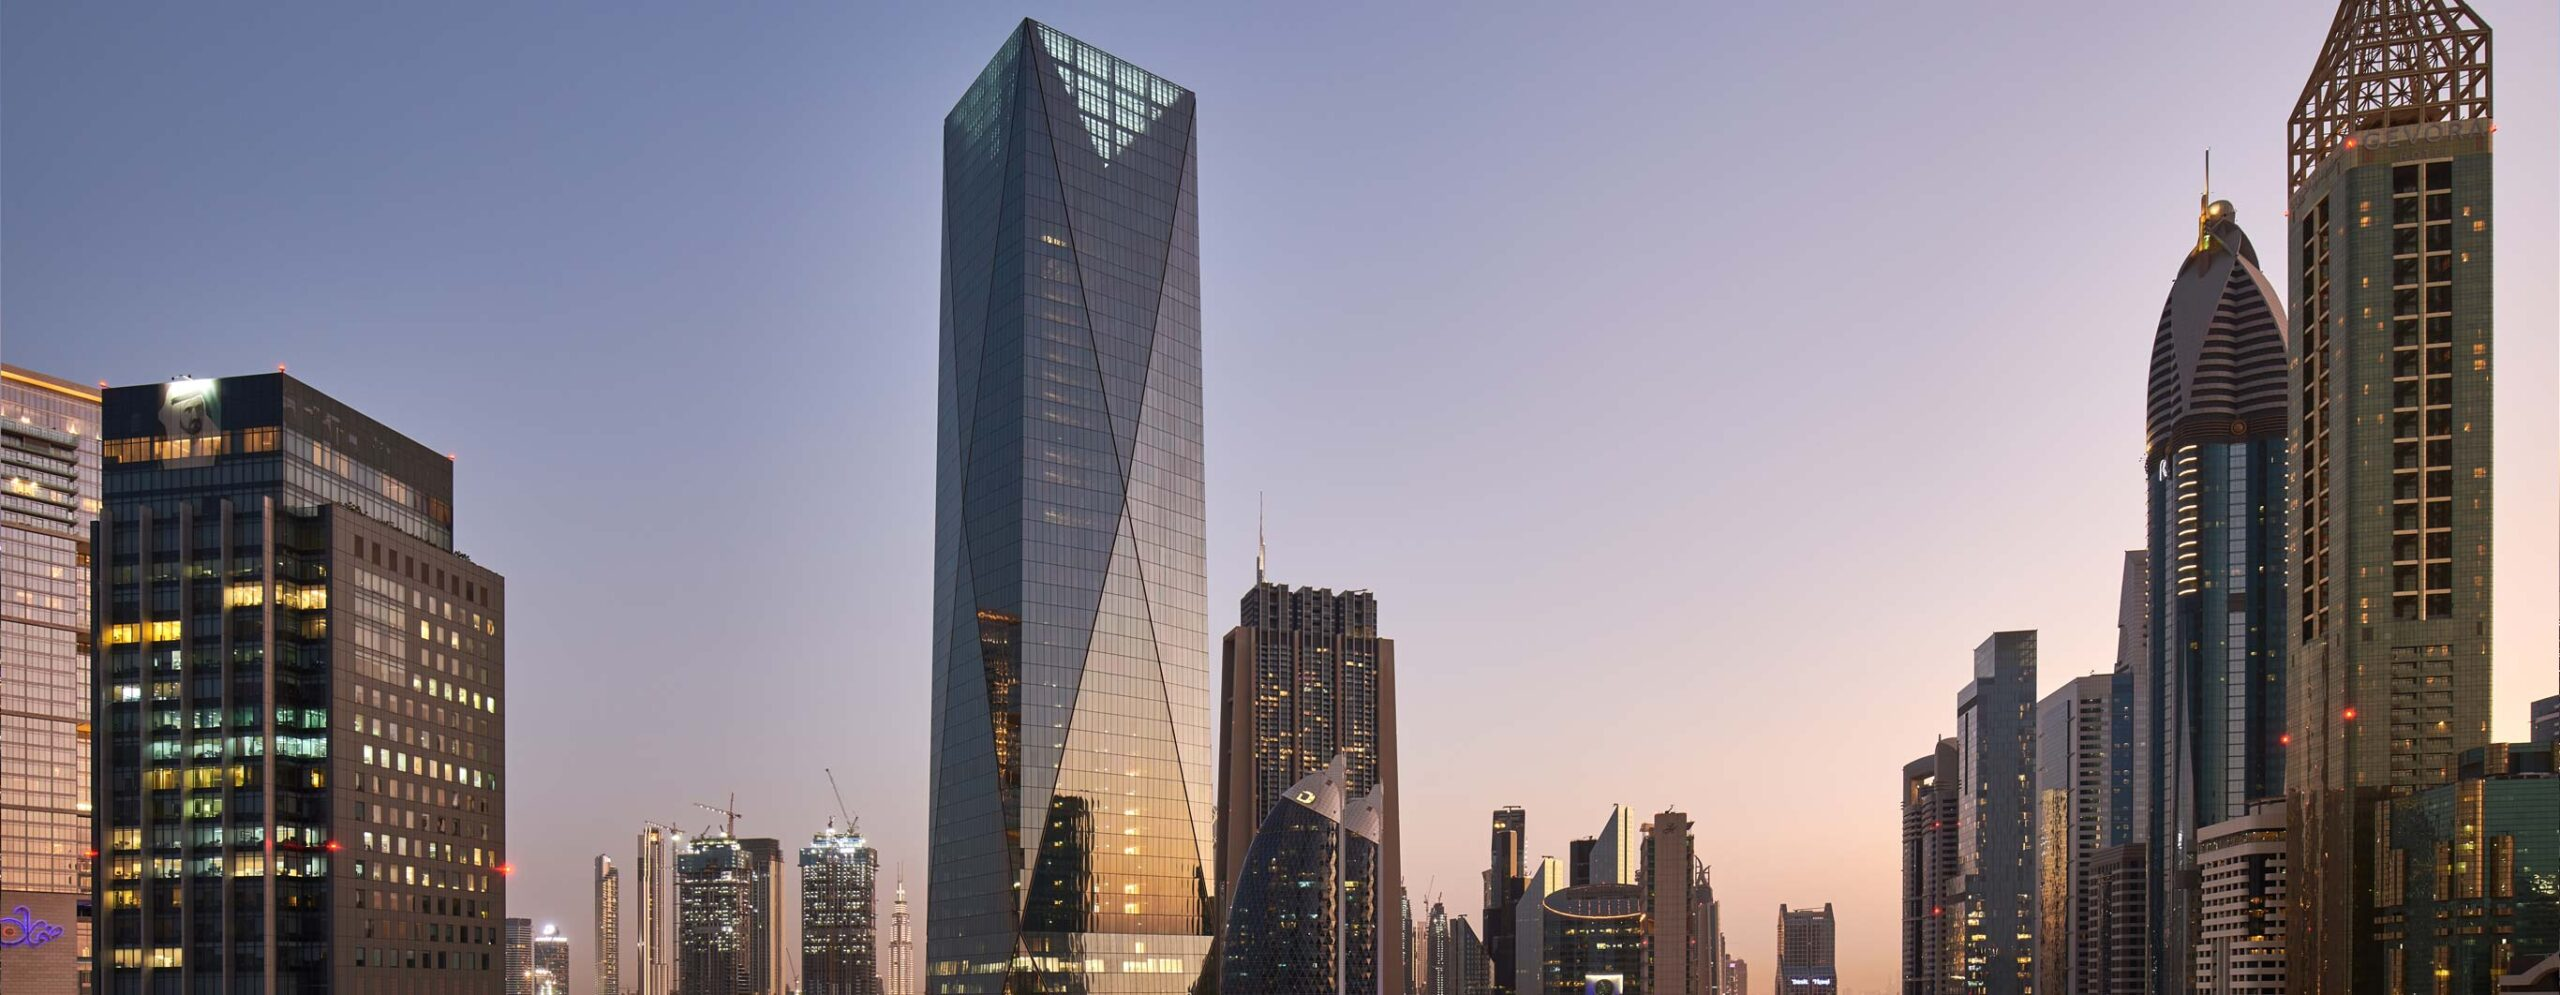 ICD Brookfield Place Dubai Designed from the ground up: <br>In conversation with Foster + Partners